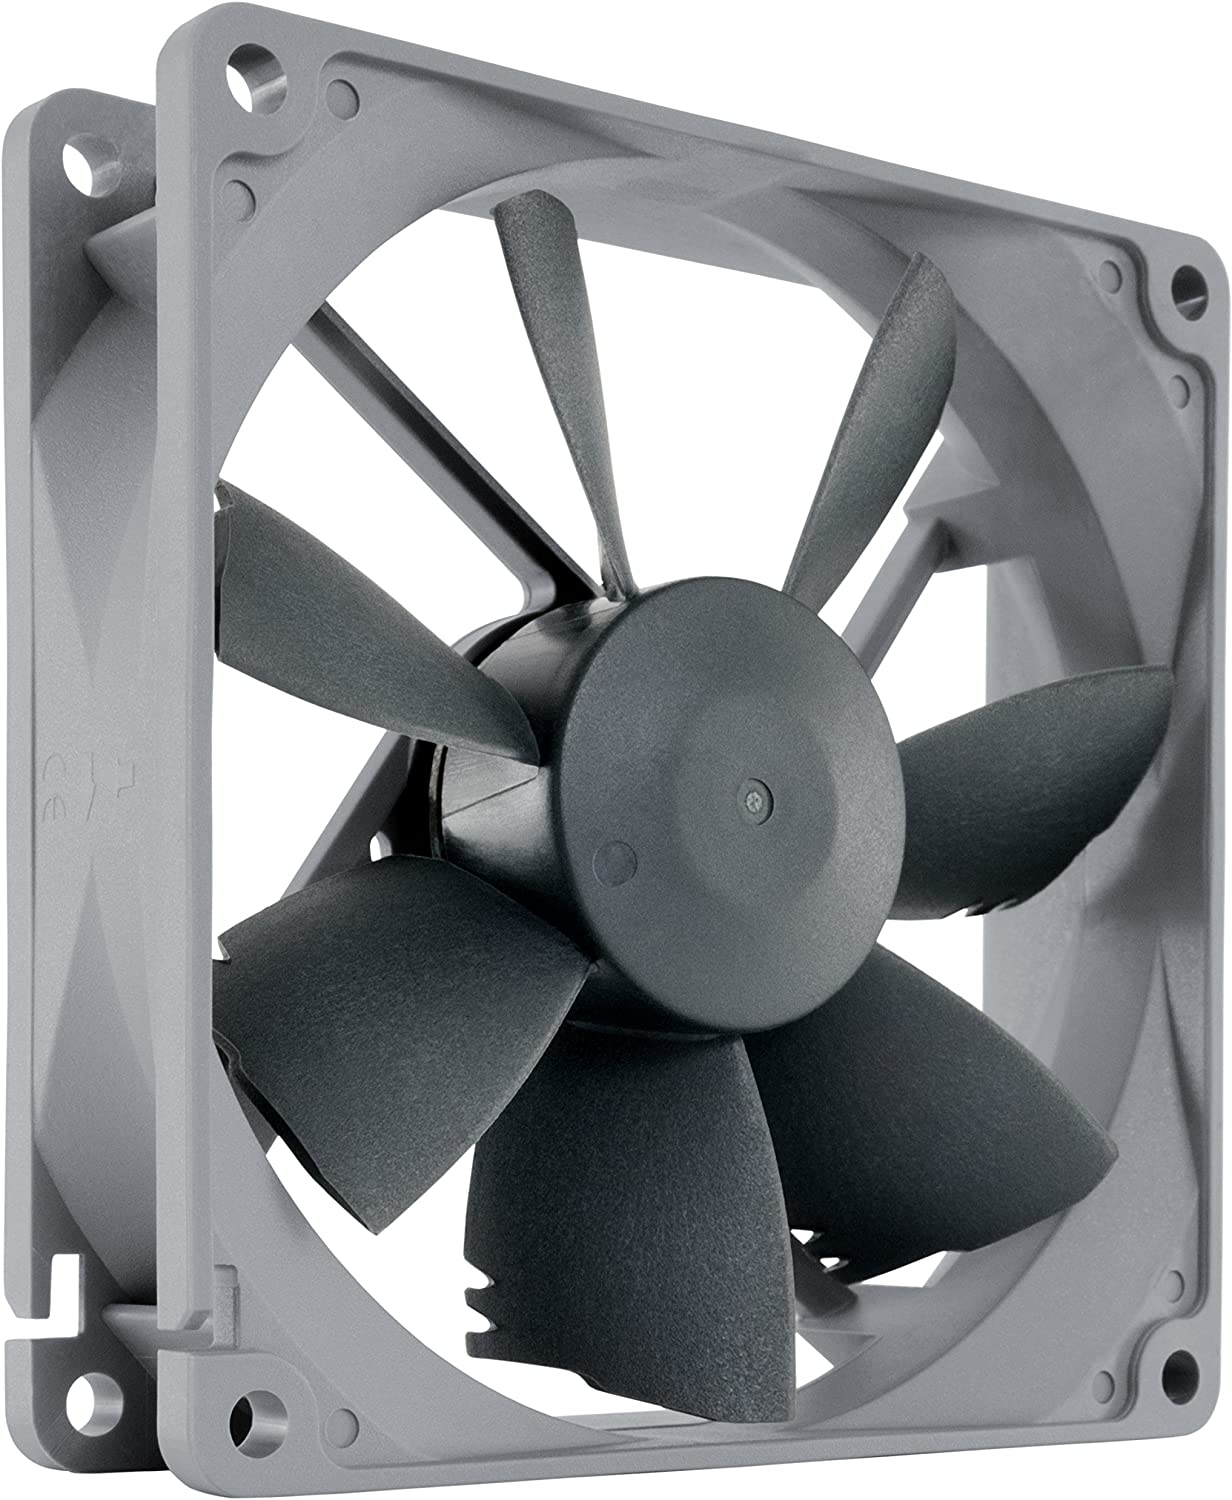 4-pack New and Unused Corsair 120mm 4-pin PWM Grey Stock Fan